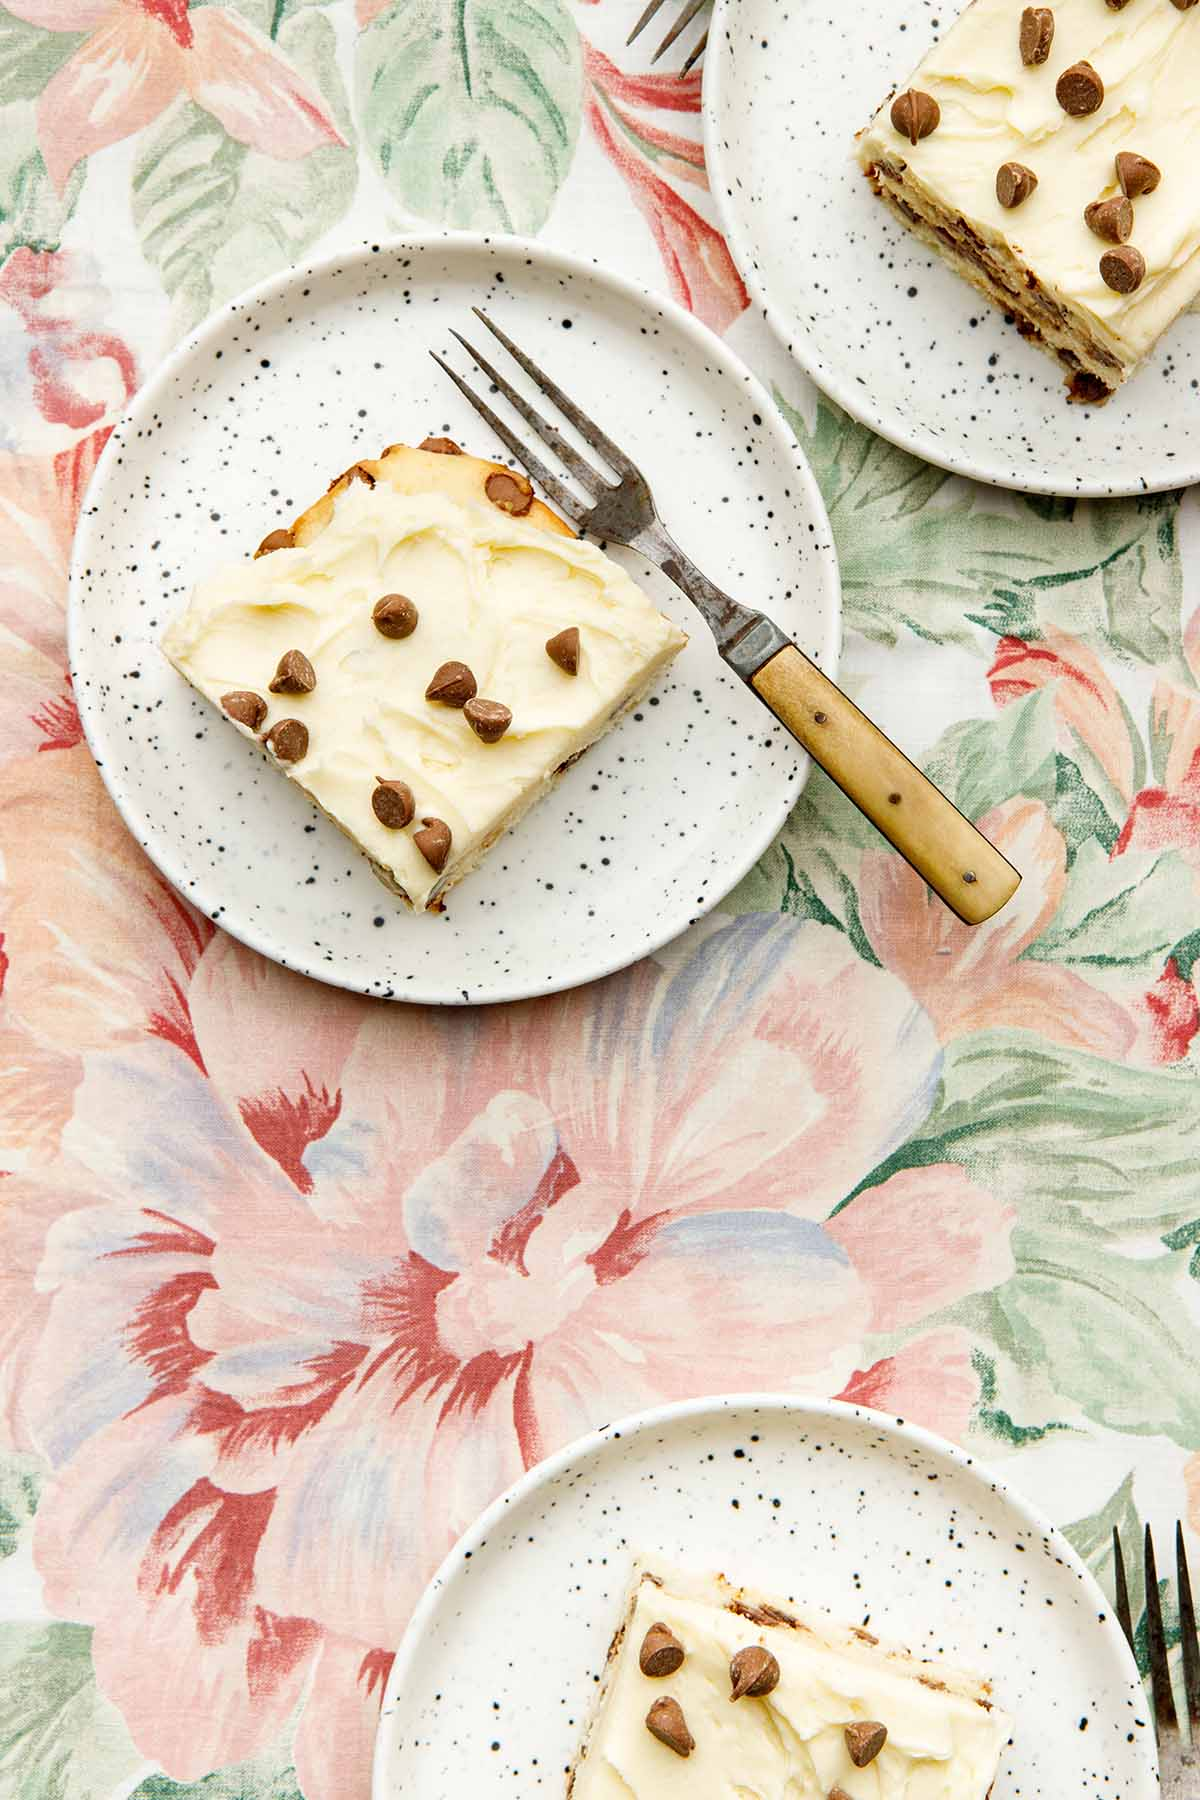 Three slices of chocolate chip cake on plates on a flowered tablecloth.